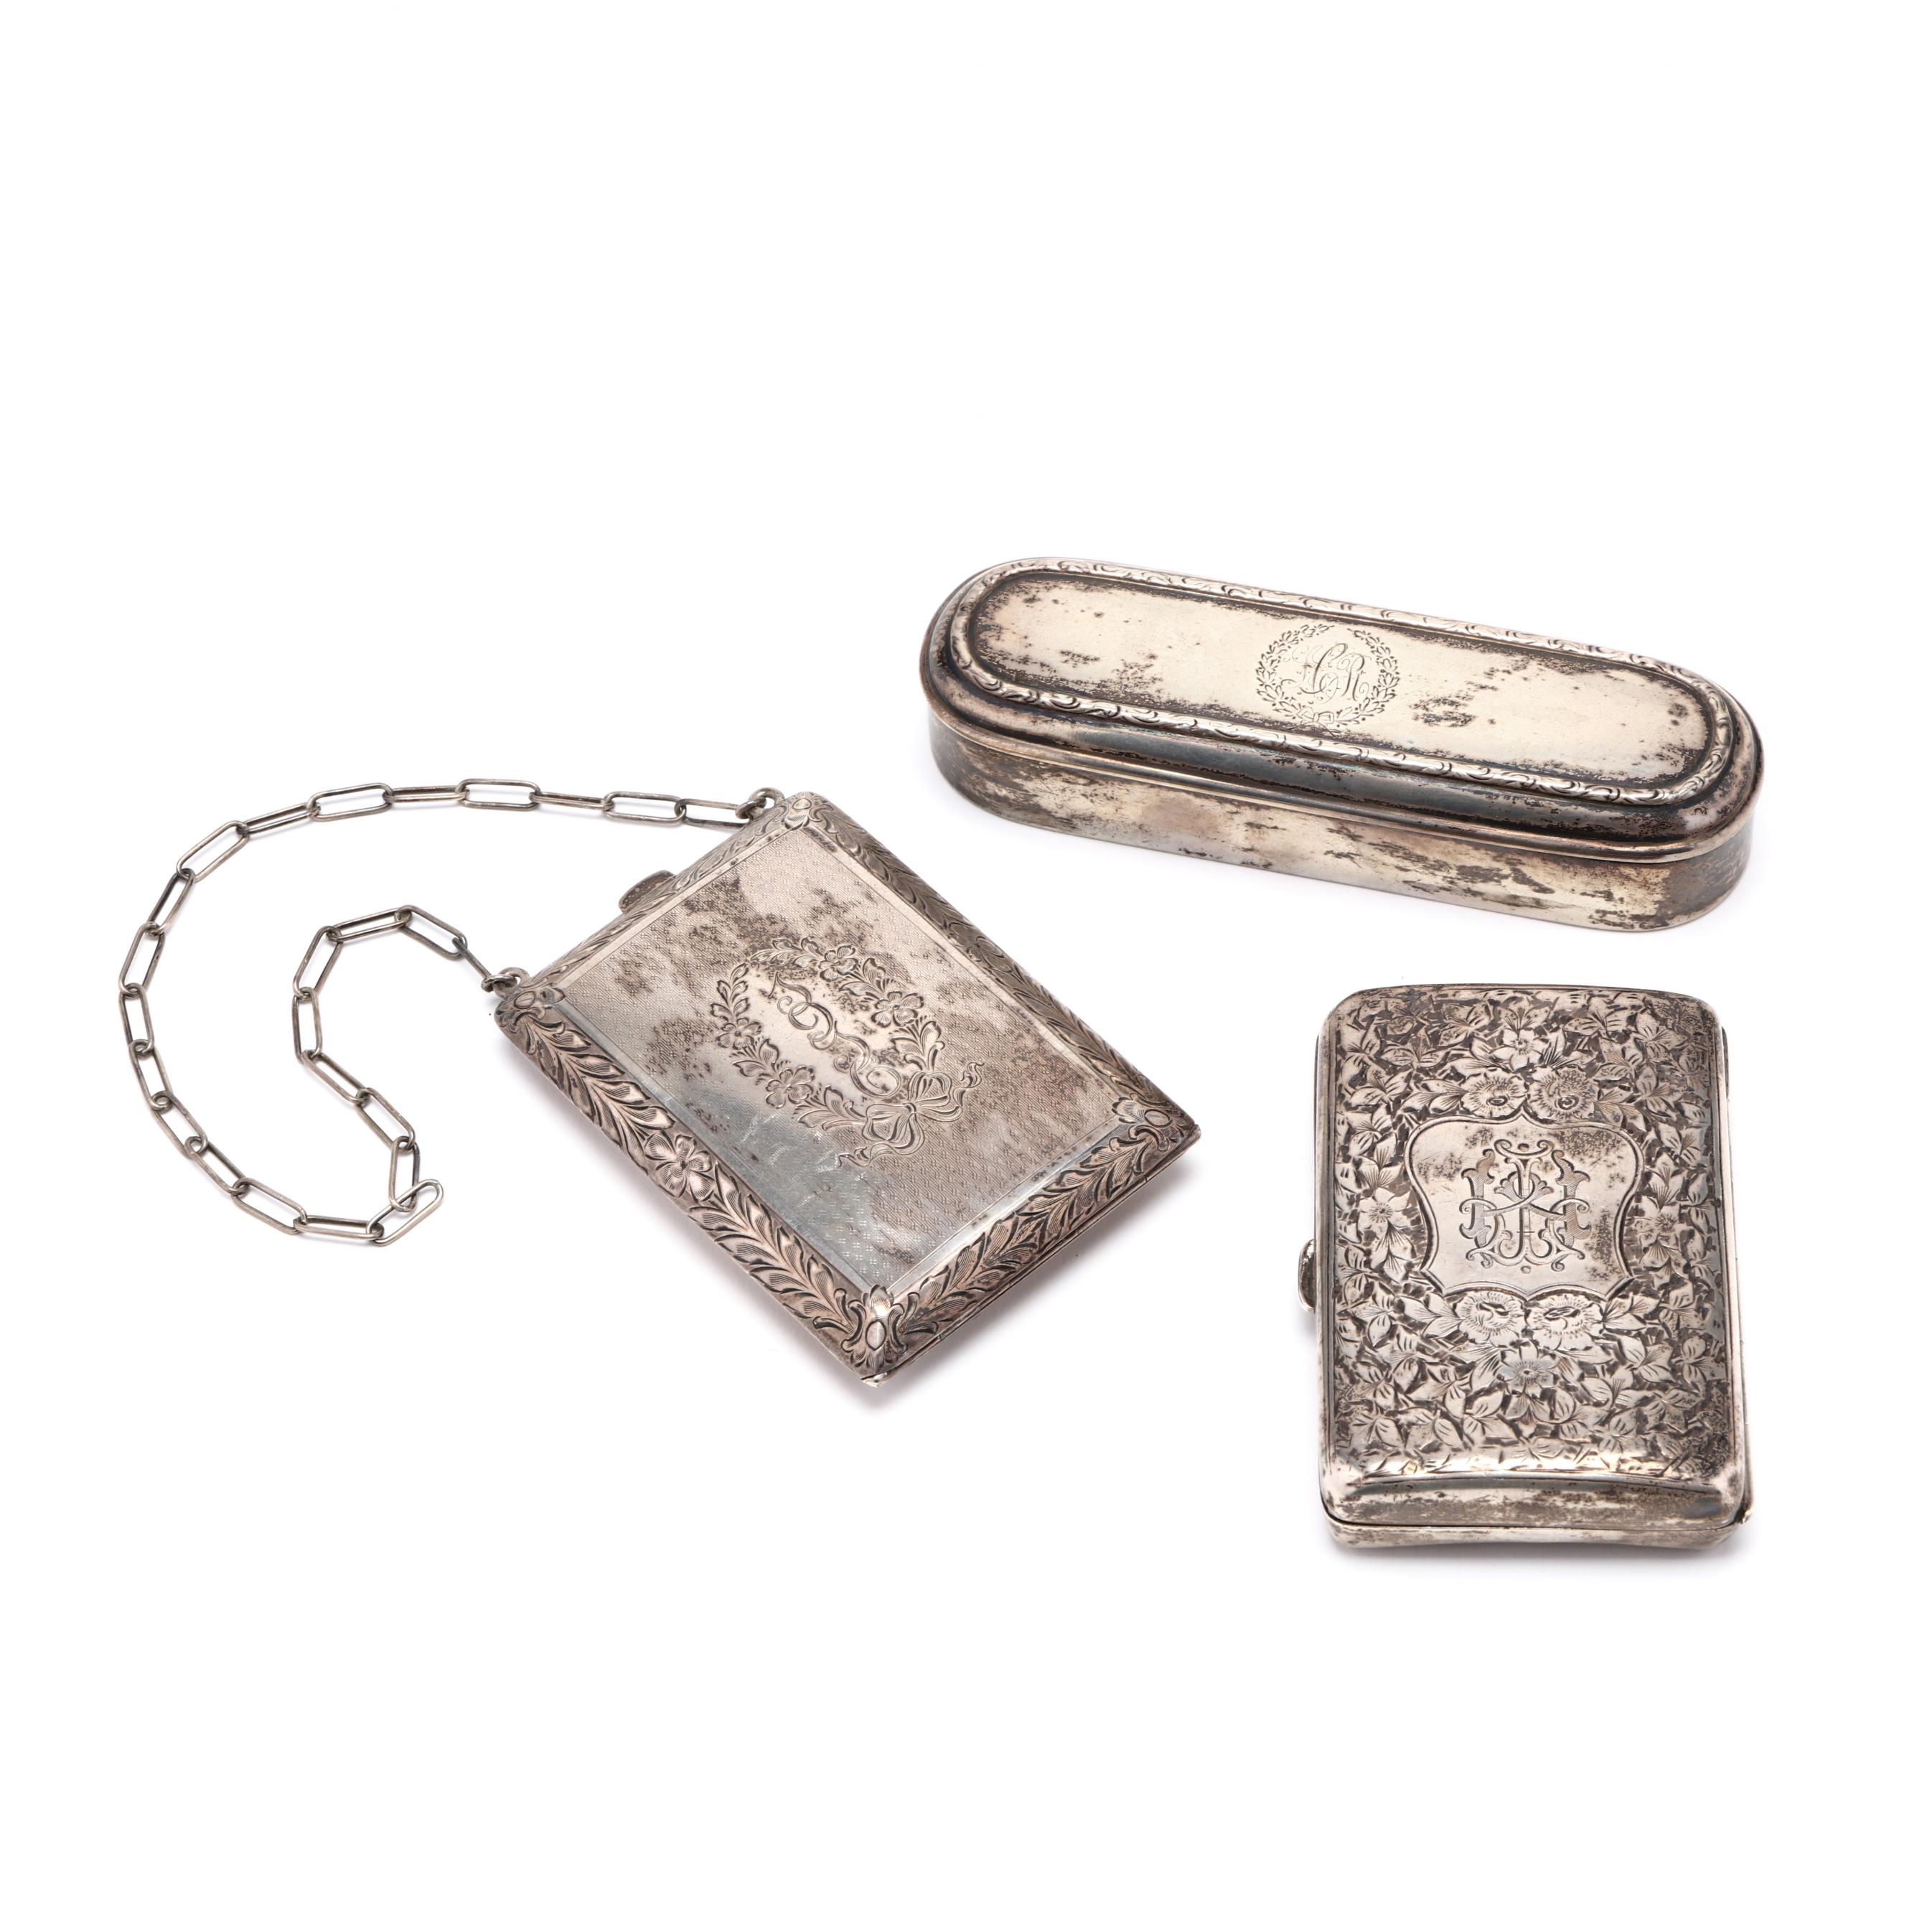 three-sterling-silver-cases